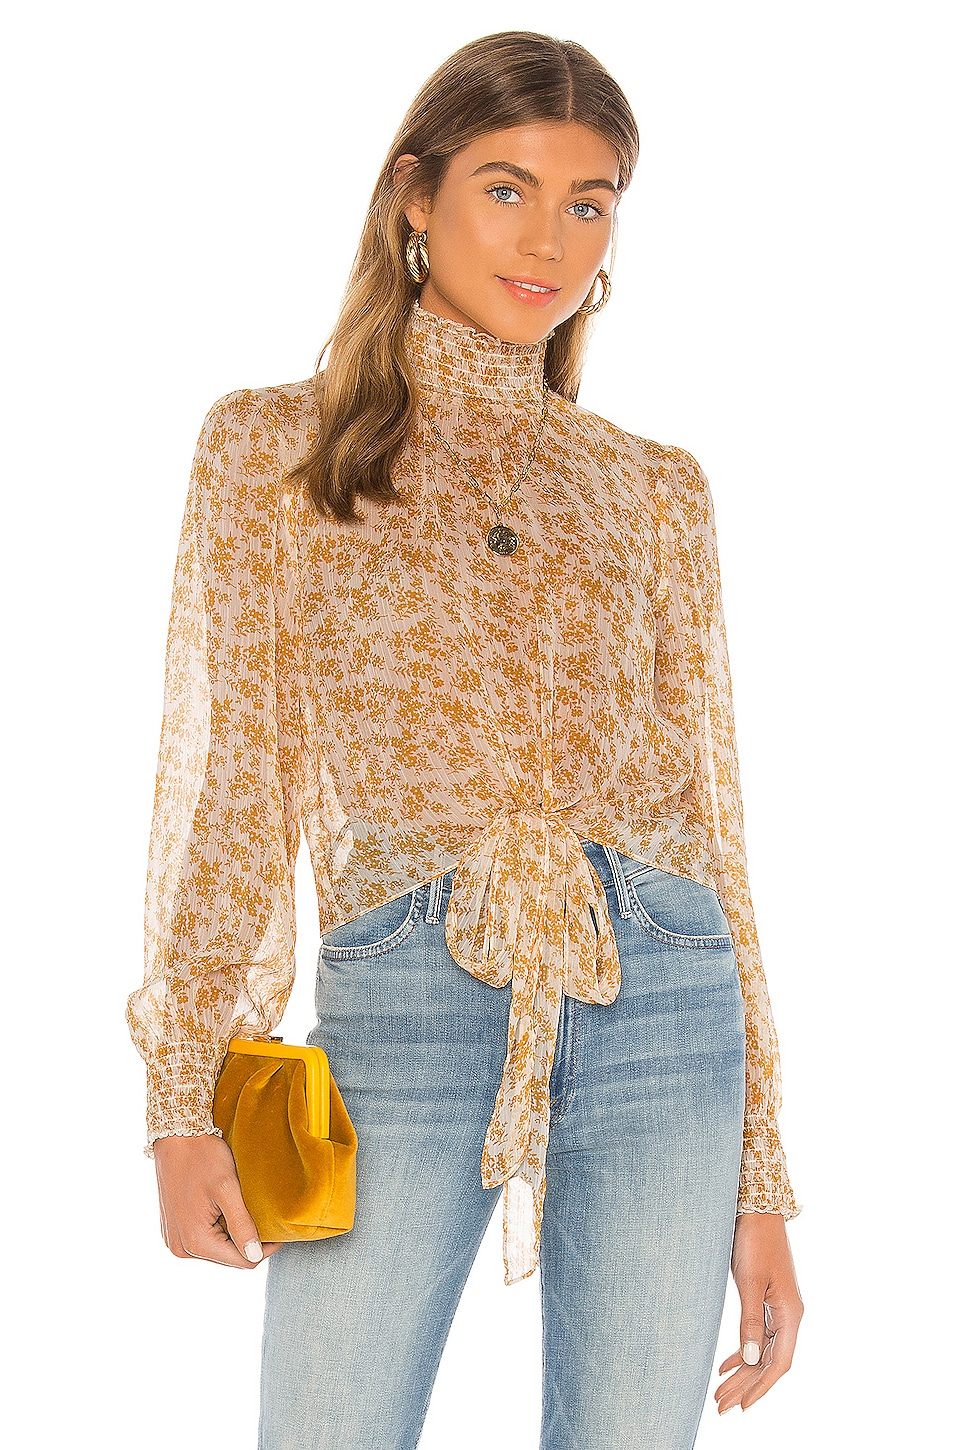 Lana High Neck Blouse             MINKPINK                                                                                                       CA$ 98.11 10